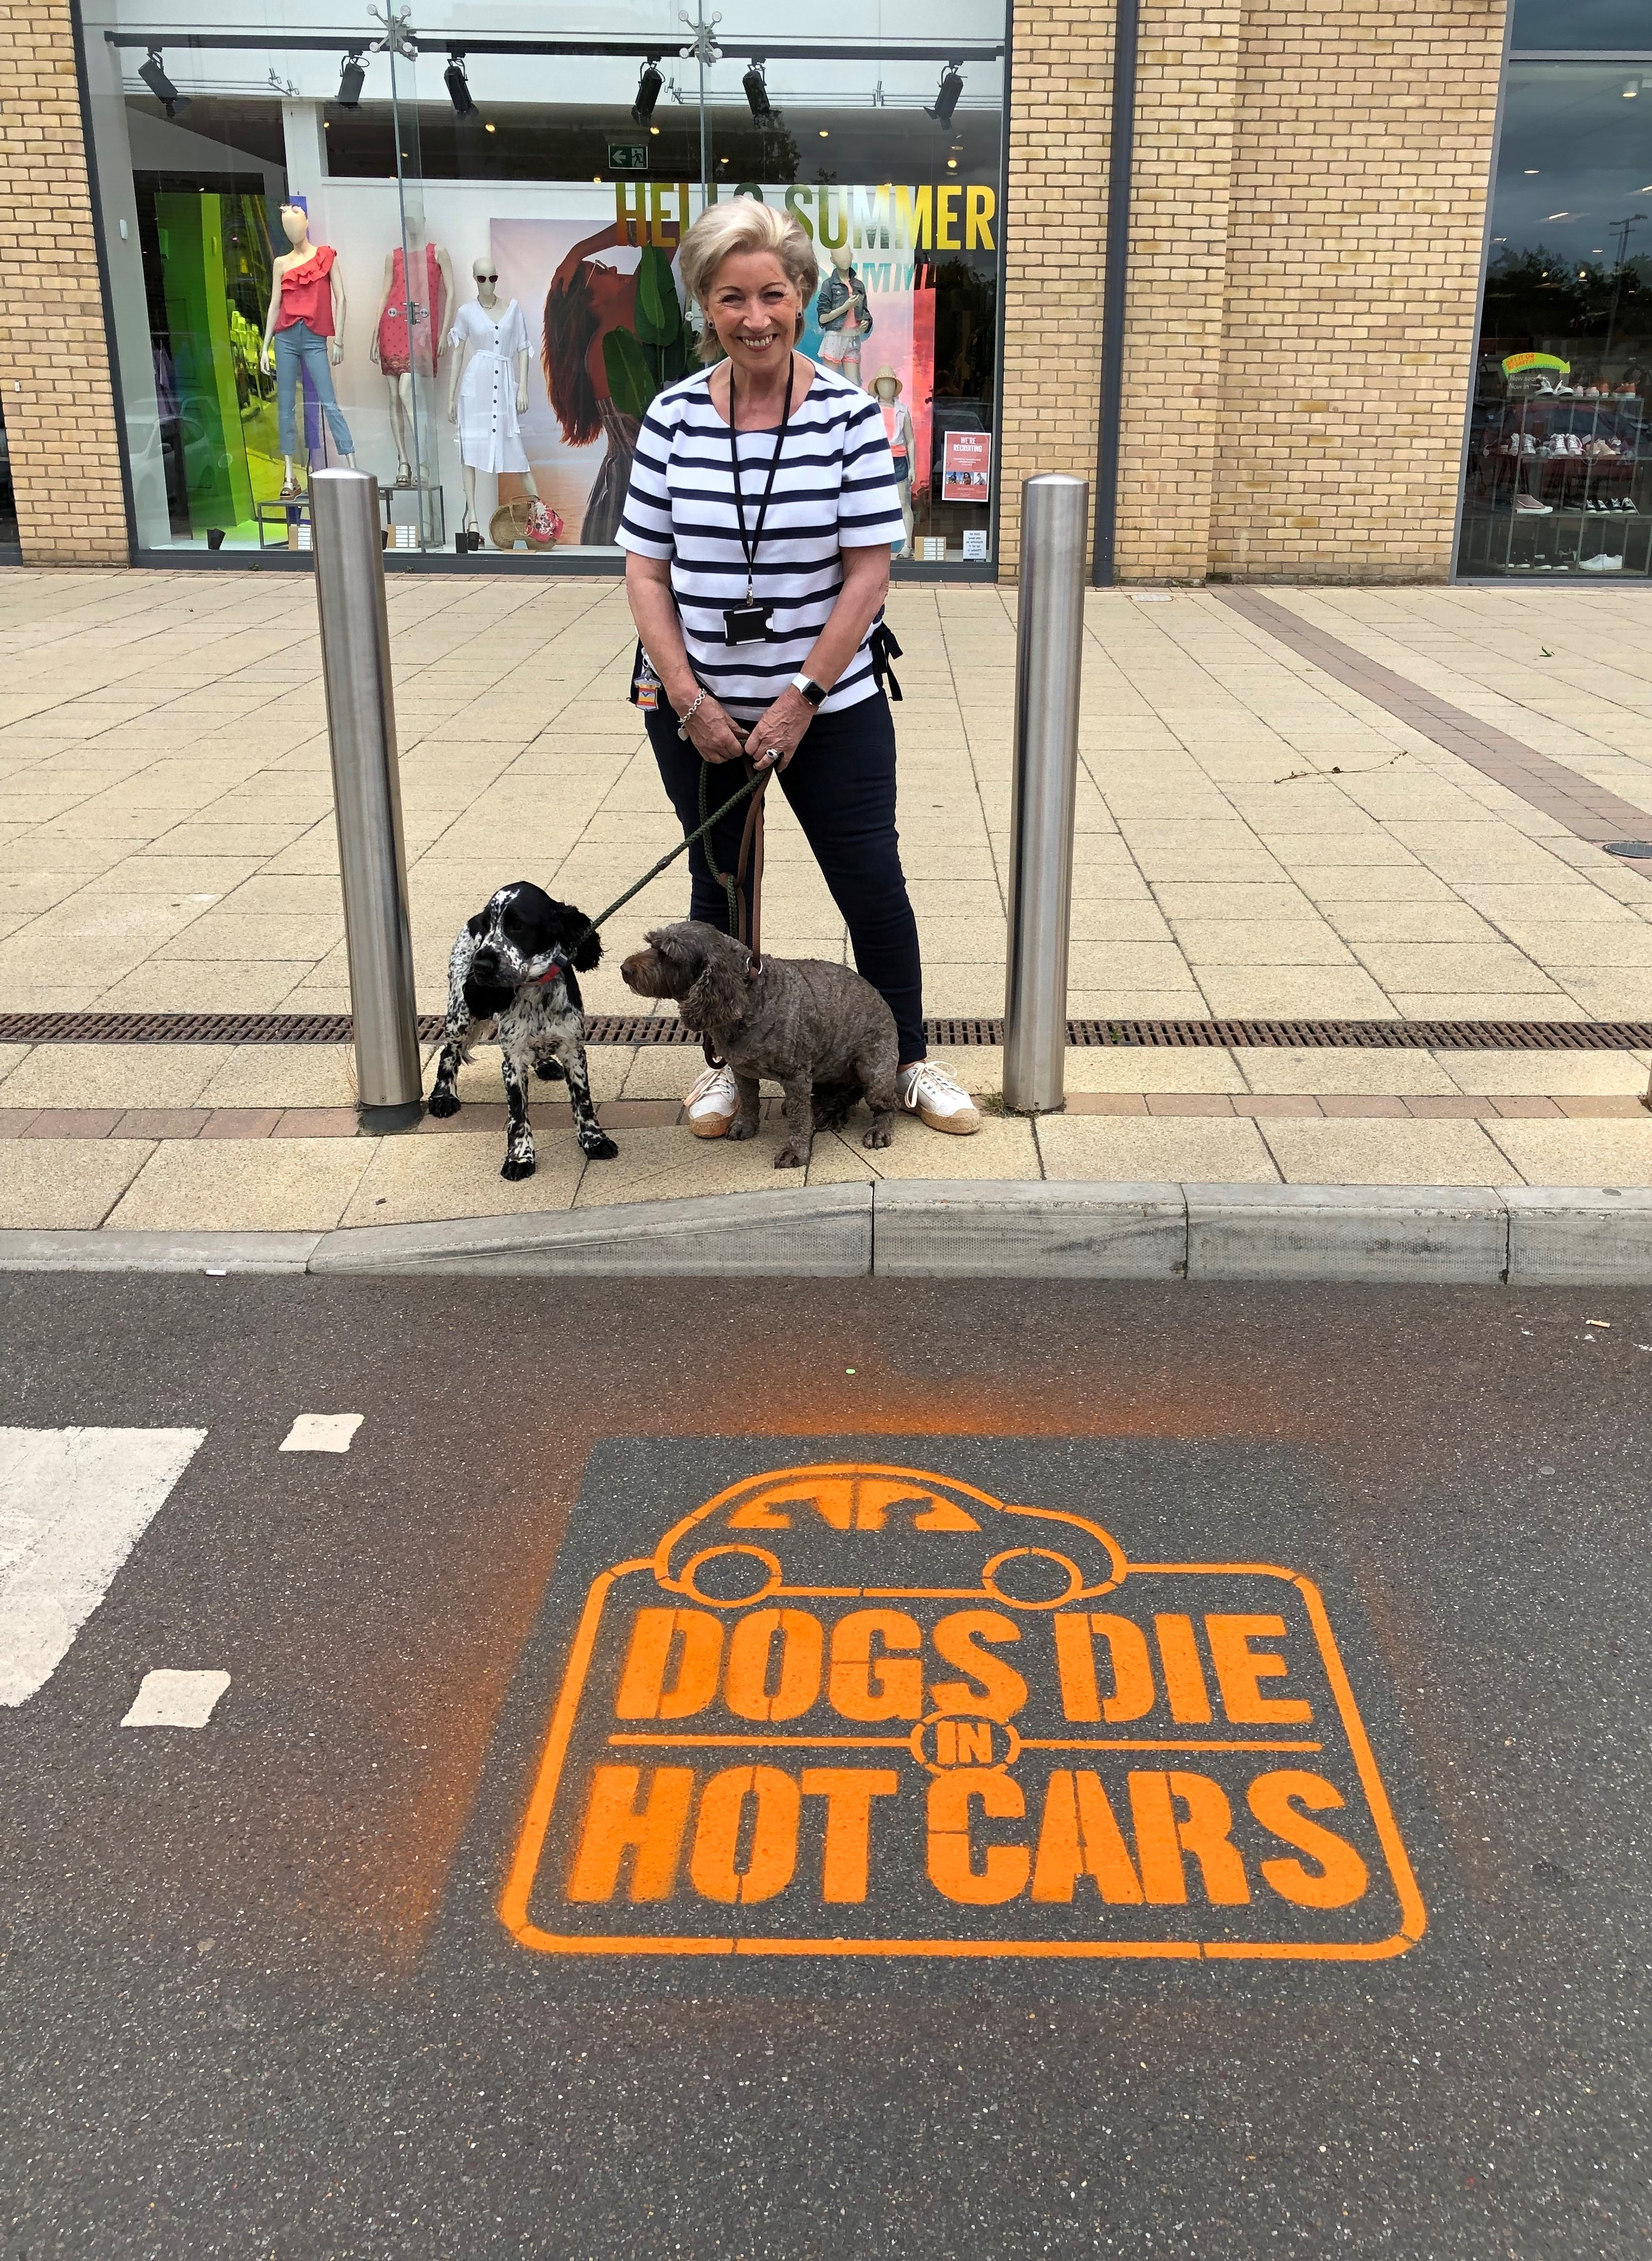 Dogs die in hot cars stencil and Marge Beuttell